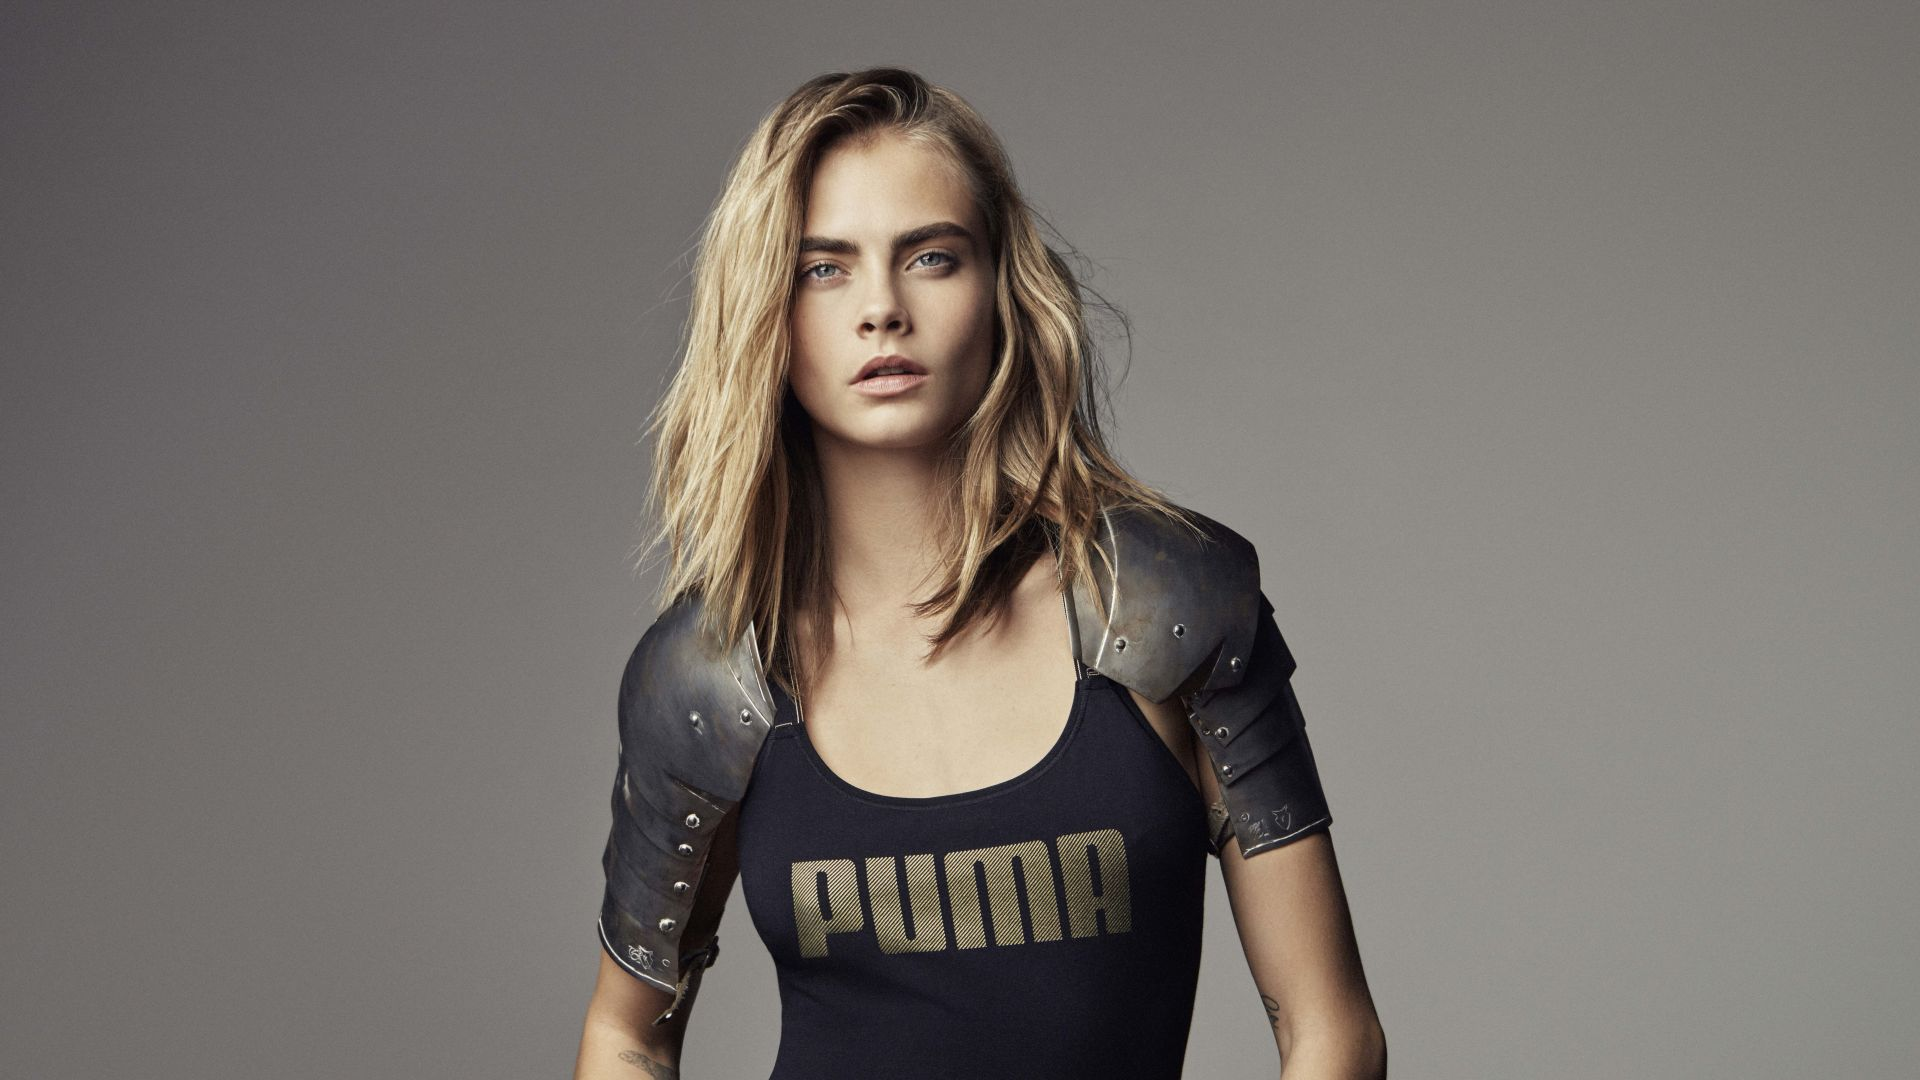 Cara Delevingne, Top Fashion Models, model, blonde (horizontal)